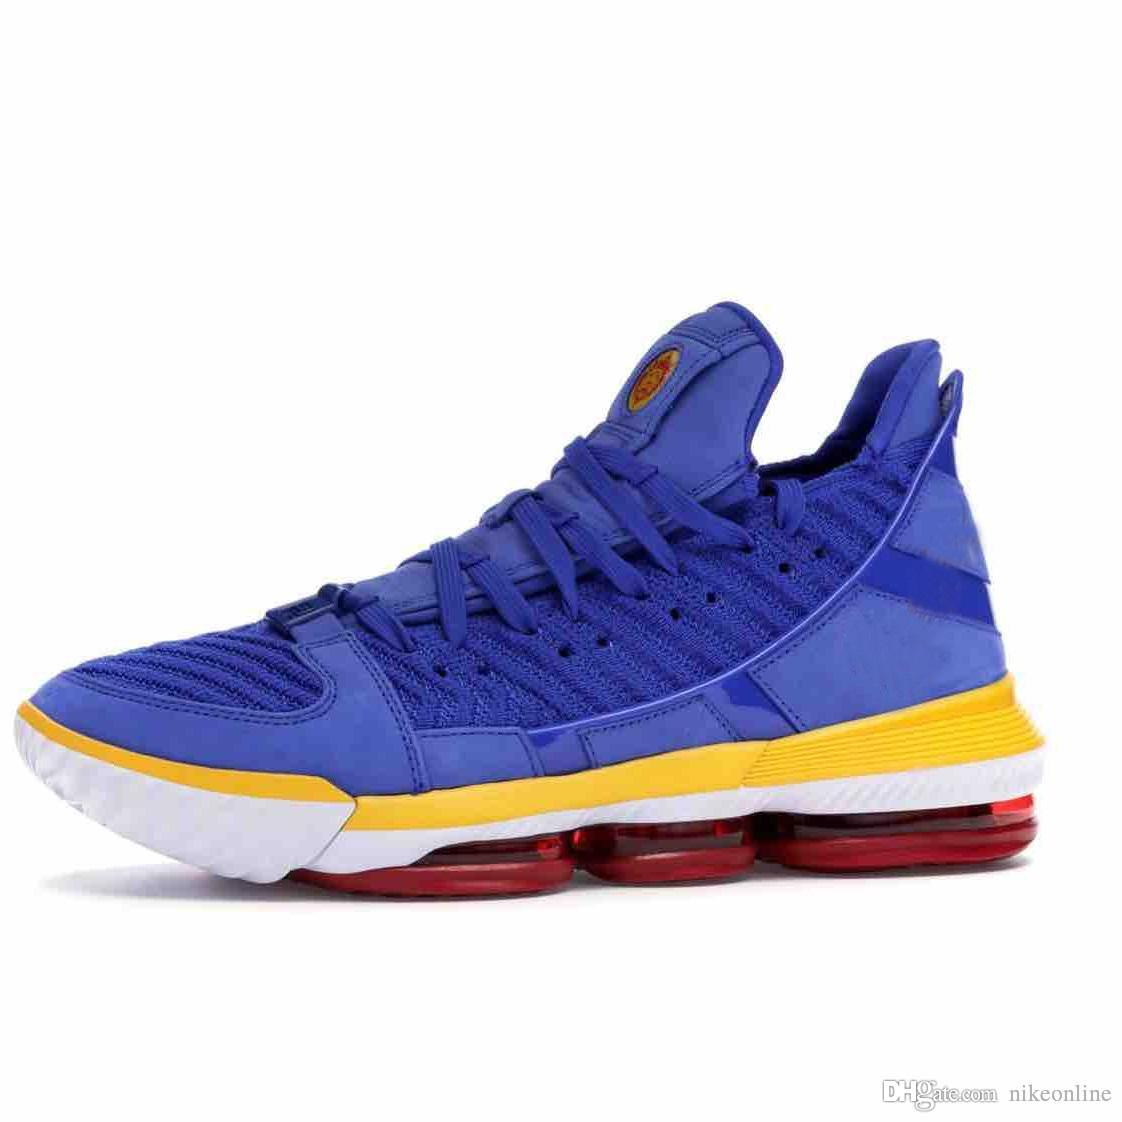 Cheap mens lebron 16 basketball shoes Blue SuperBron Red Martin Purple Wolf Grey MPLS youth kids new lebrons sneakers tennis with box size